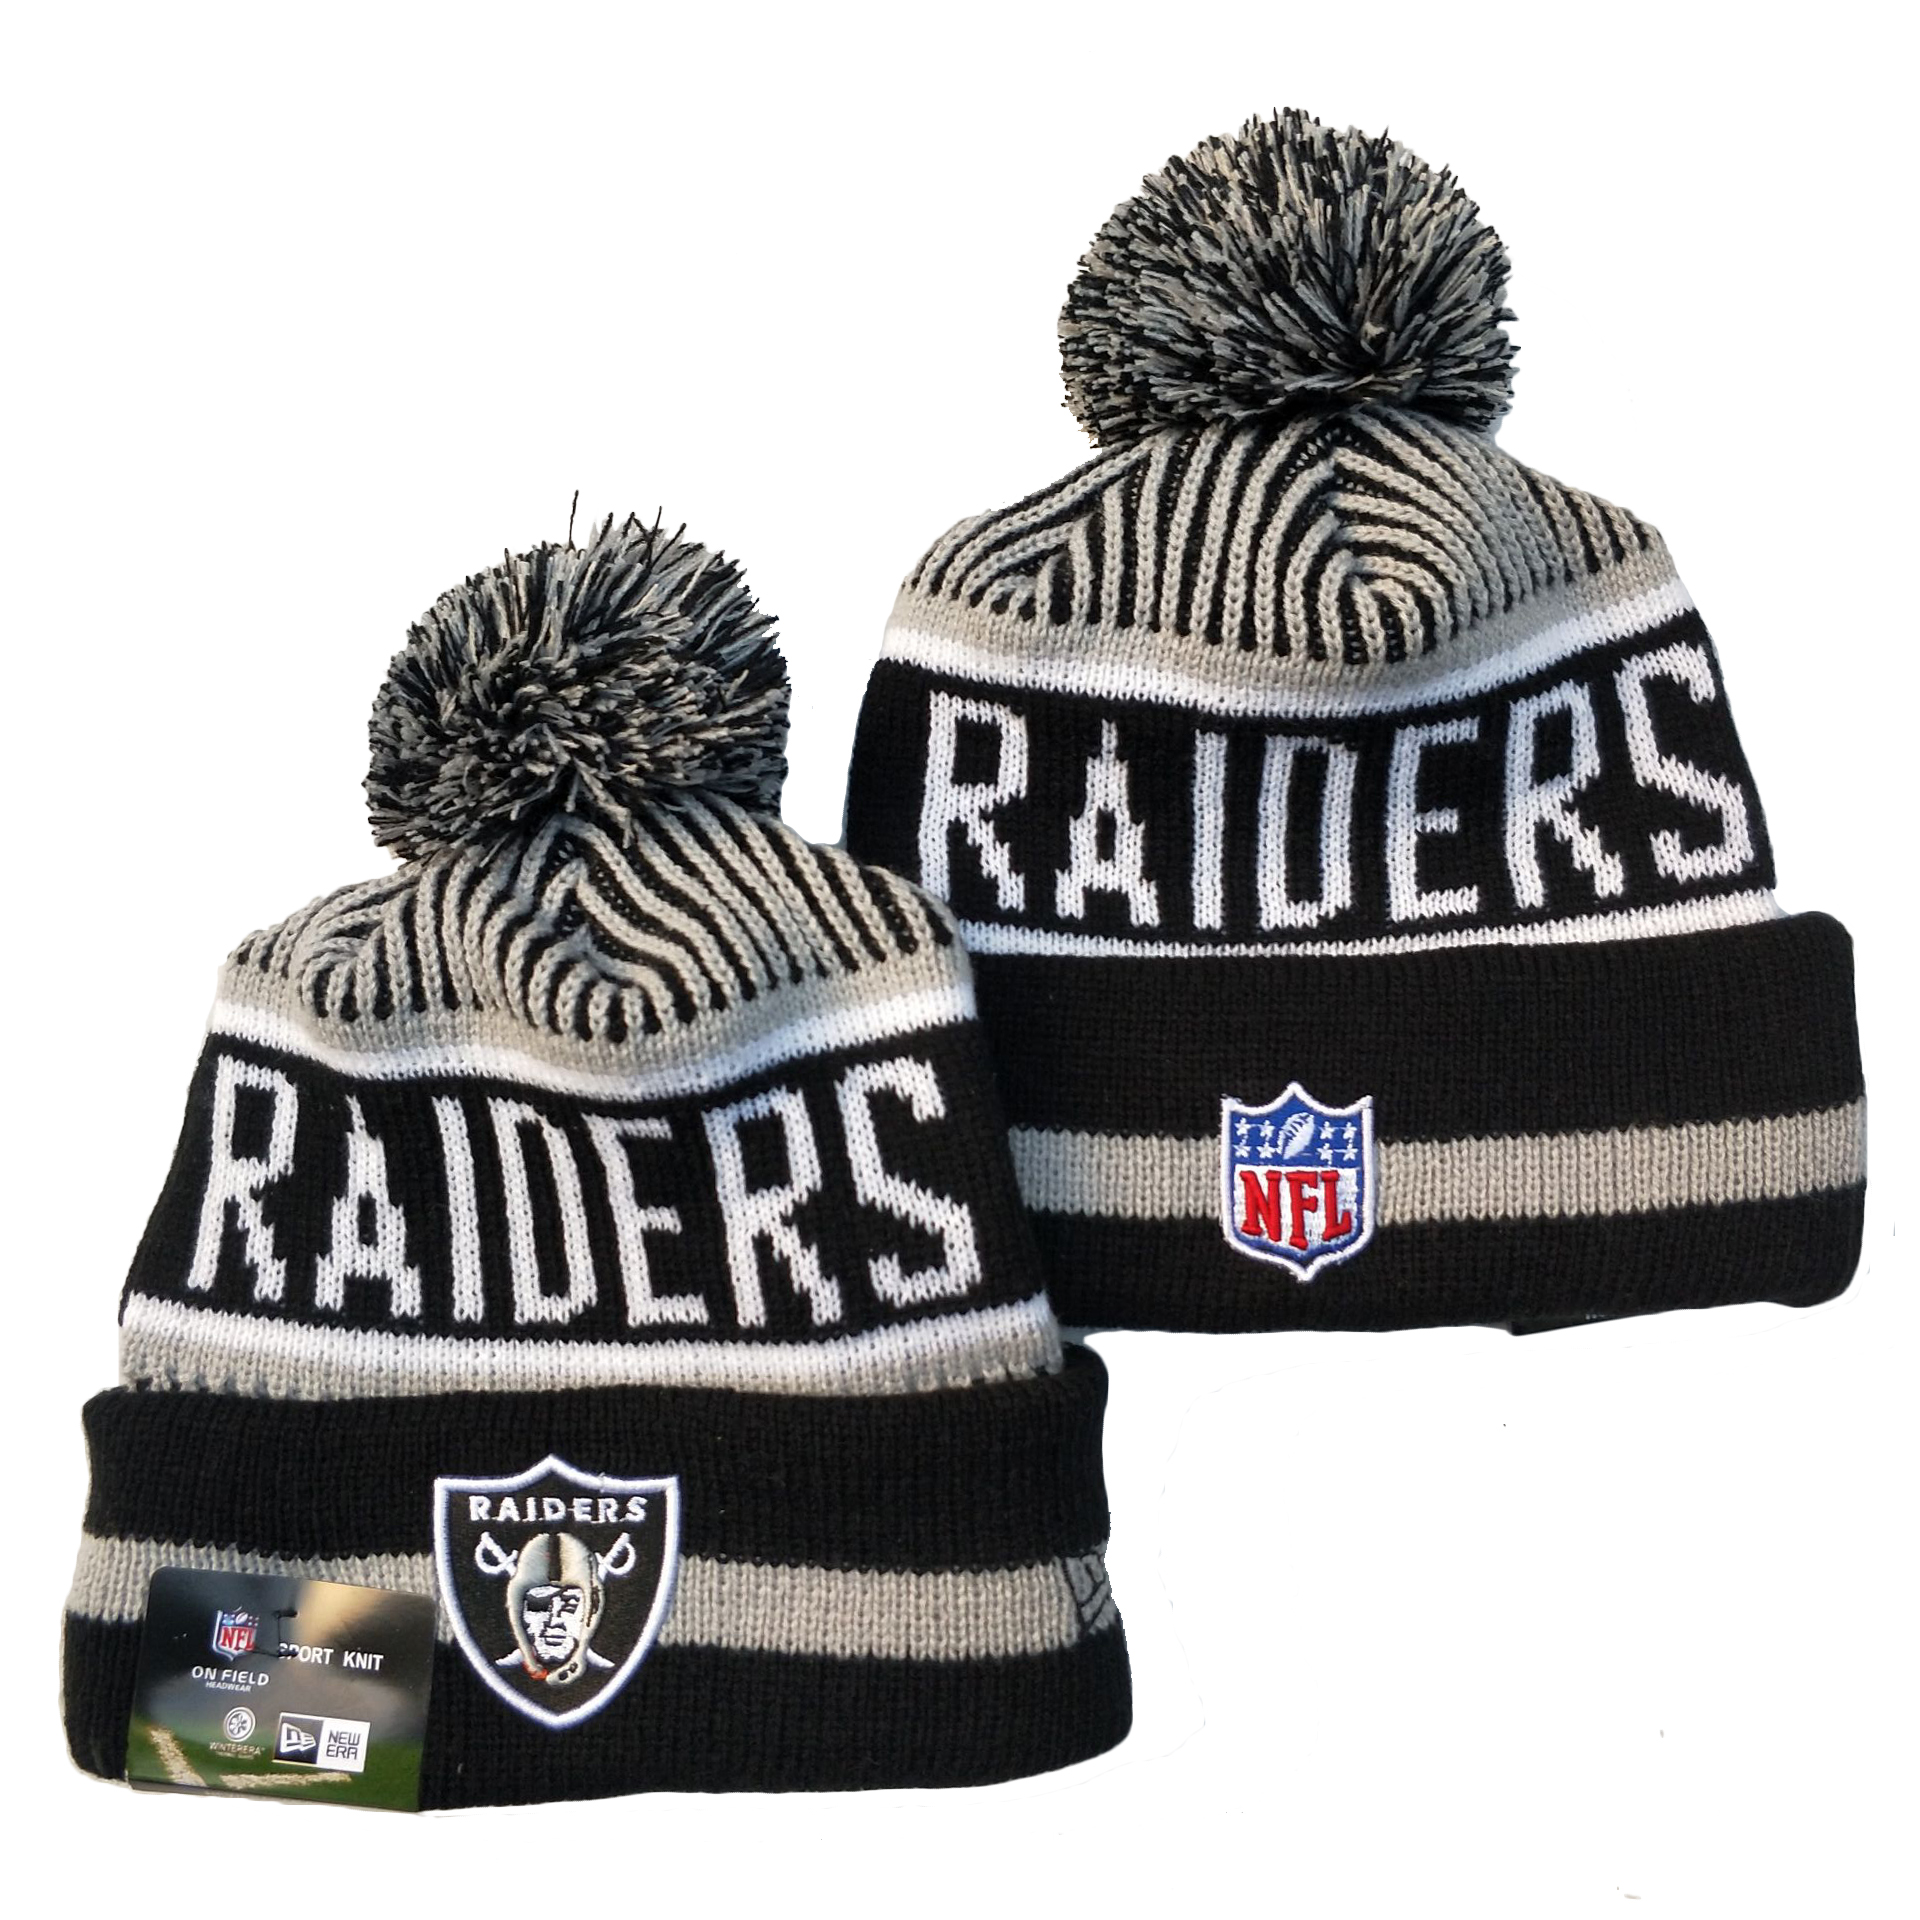 Las Vegas Raiders Knit Hats 080